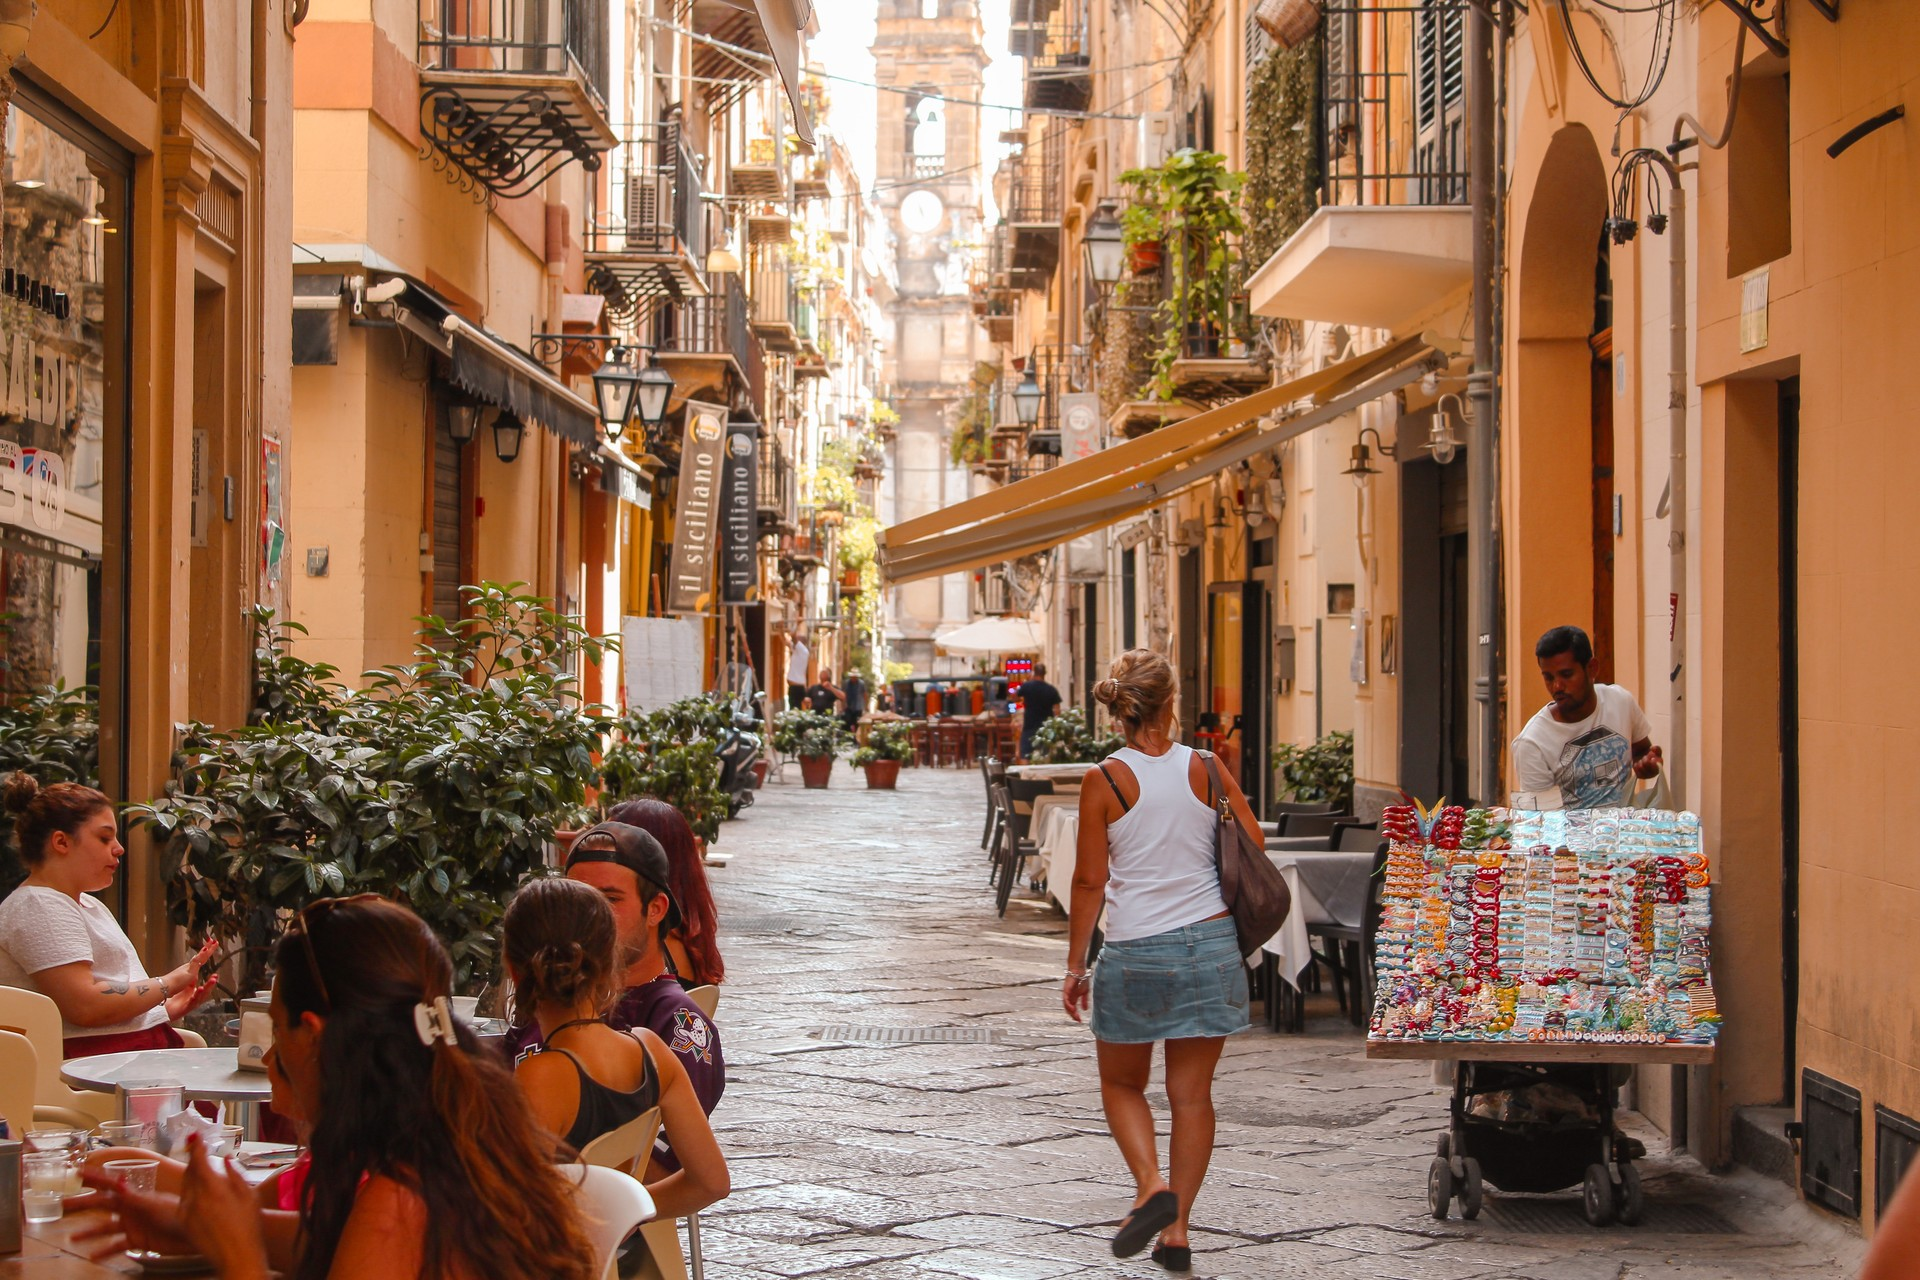 60-days-palermo-427269cee7df50e1d9a48aaa